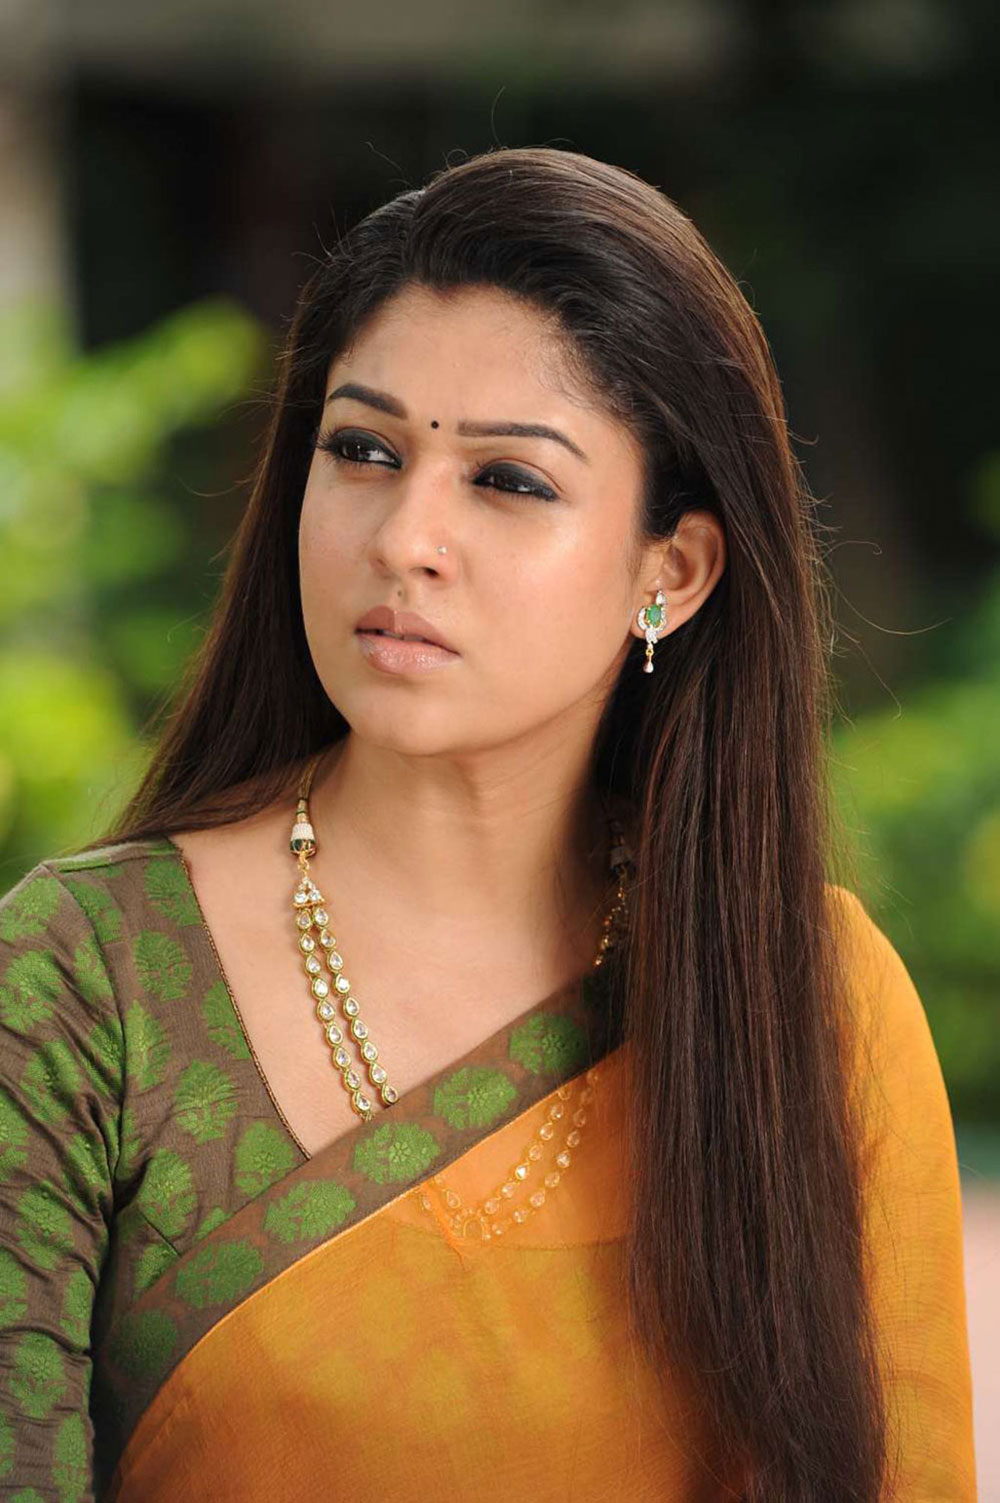 Charming Tamil Actress Nayanthara Beautiful Saree Photos